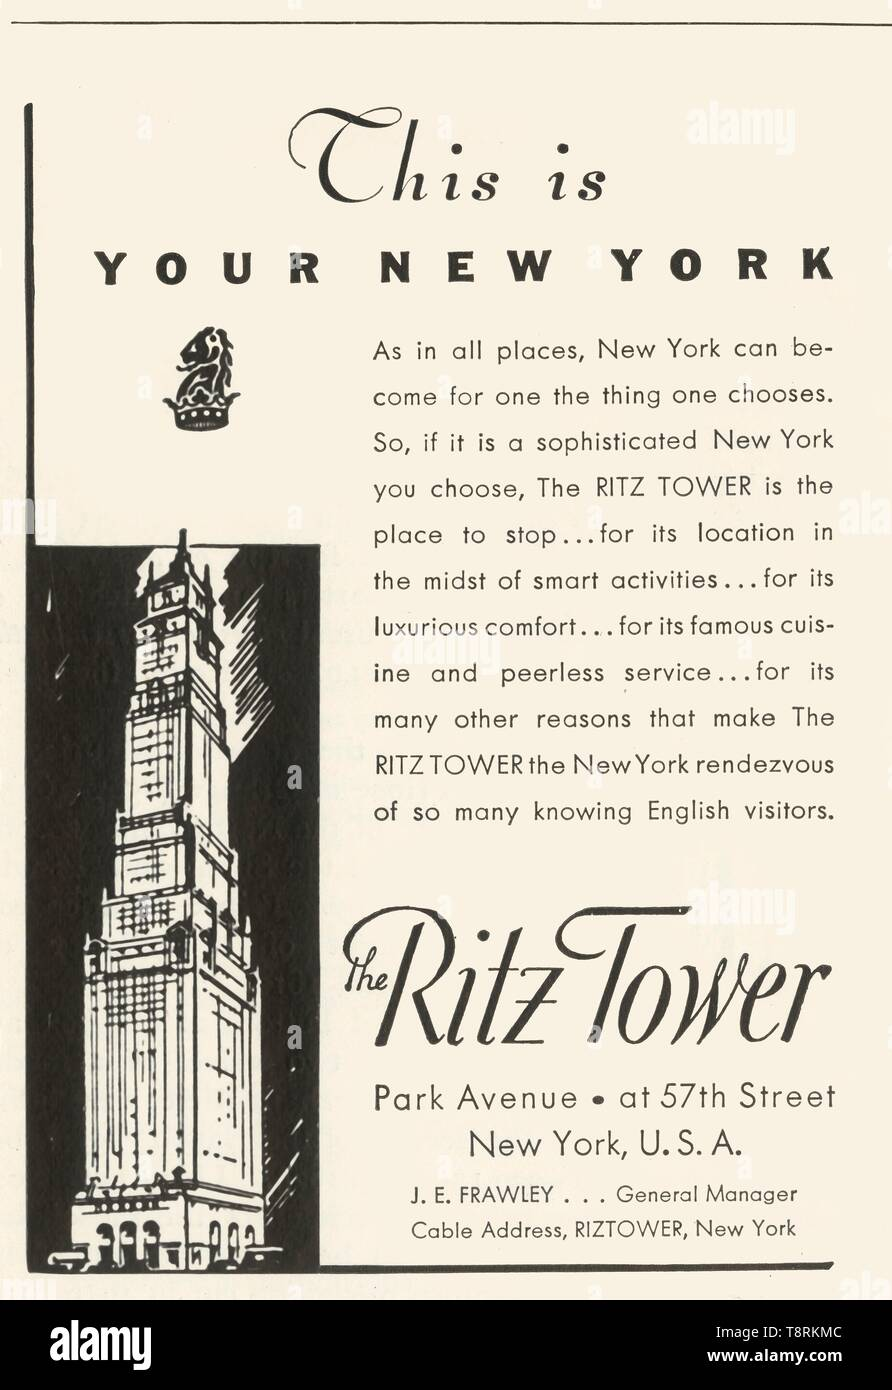 "Advertisement for the Ritz Tower Hotel in New York, 1934. 'This is your New York: As in all places, New York can become for one the thing one chooses. So, if it s a sophisticated New York you choose, The Ritz Tower is the place to stop...for its location in the midst of smart activities...for its luxurious comfort...for its famous cuisine and peerless service...for its many other reasons that make The Ritz Tower the New York rendezvous of so many knowing English visitors'. From ""The Connoisseur"", Vol 93, No 389, January 1934. [The Connoisseur Ltd., London, 1934] - Stock Image"